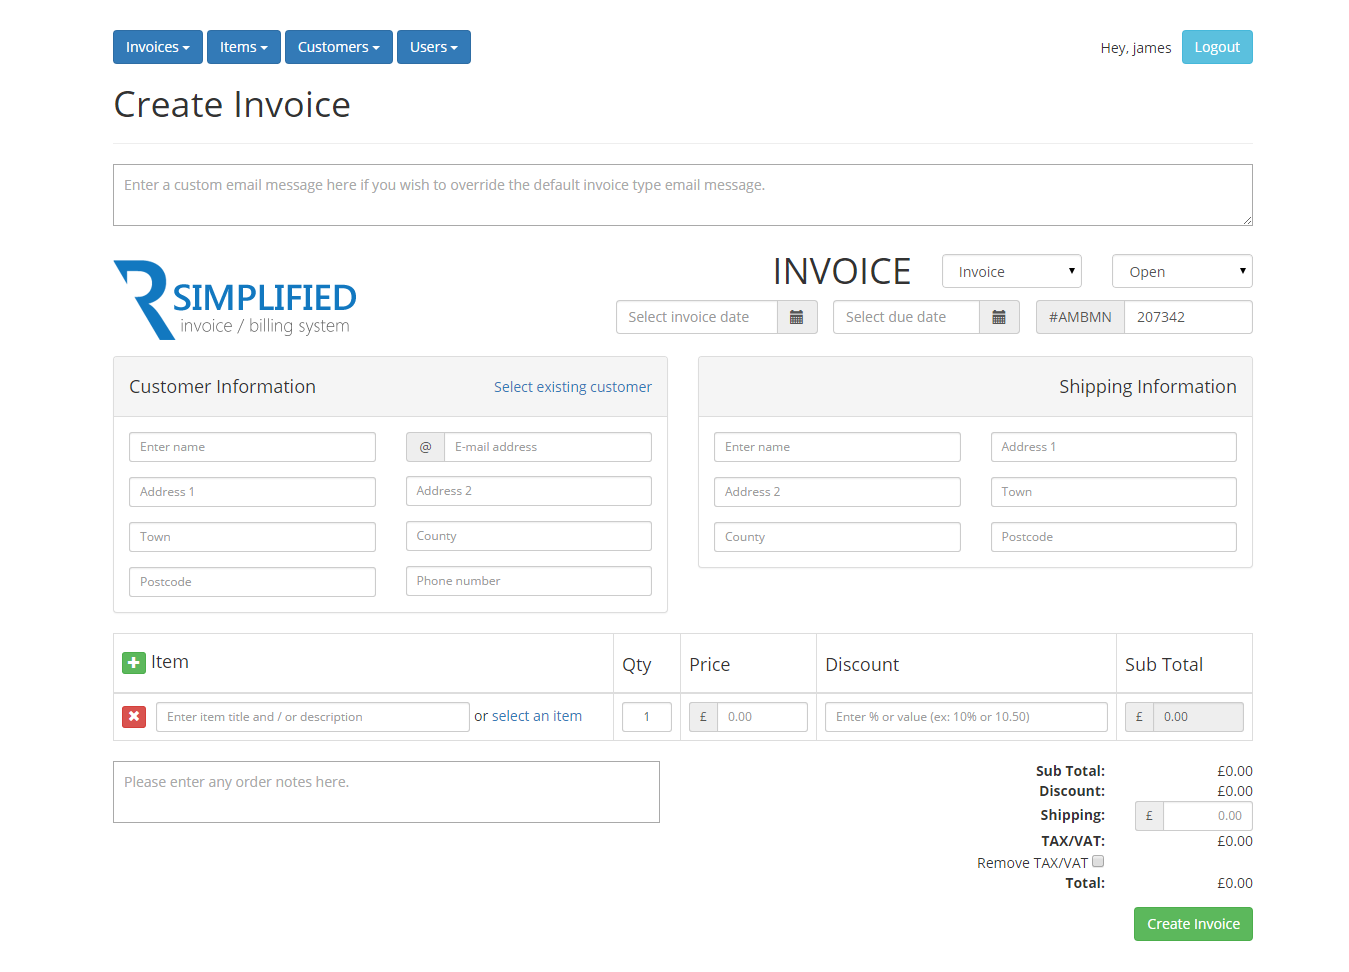 Opposenewapstandardsus  Gorgeous Simplified Php Invoice  Billing System By Rebootdigitaluk  With Handsome  Createinvoicepng  With Enchanting Non Payment Of Invoices Also Invoice Without Gst In Addition Free Invoice Creator Software And Copy Invoices As Well As Discount Invoicing Additionally Car Sale Invoice Sample From Codecanyonnet With Opposenewapstandardsus  Handsome Simplified Php Invoice  Billing System By Rebootdigitaluk  With Enchanting  Createinvoicepng  And Gorgeous Non Payment Of Invoices Also Invoice Without Gst In Addition Free Invoice Creator Software From Codecanyonnet